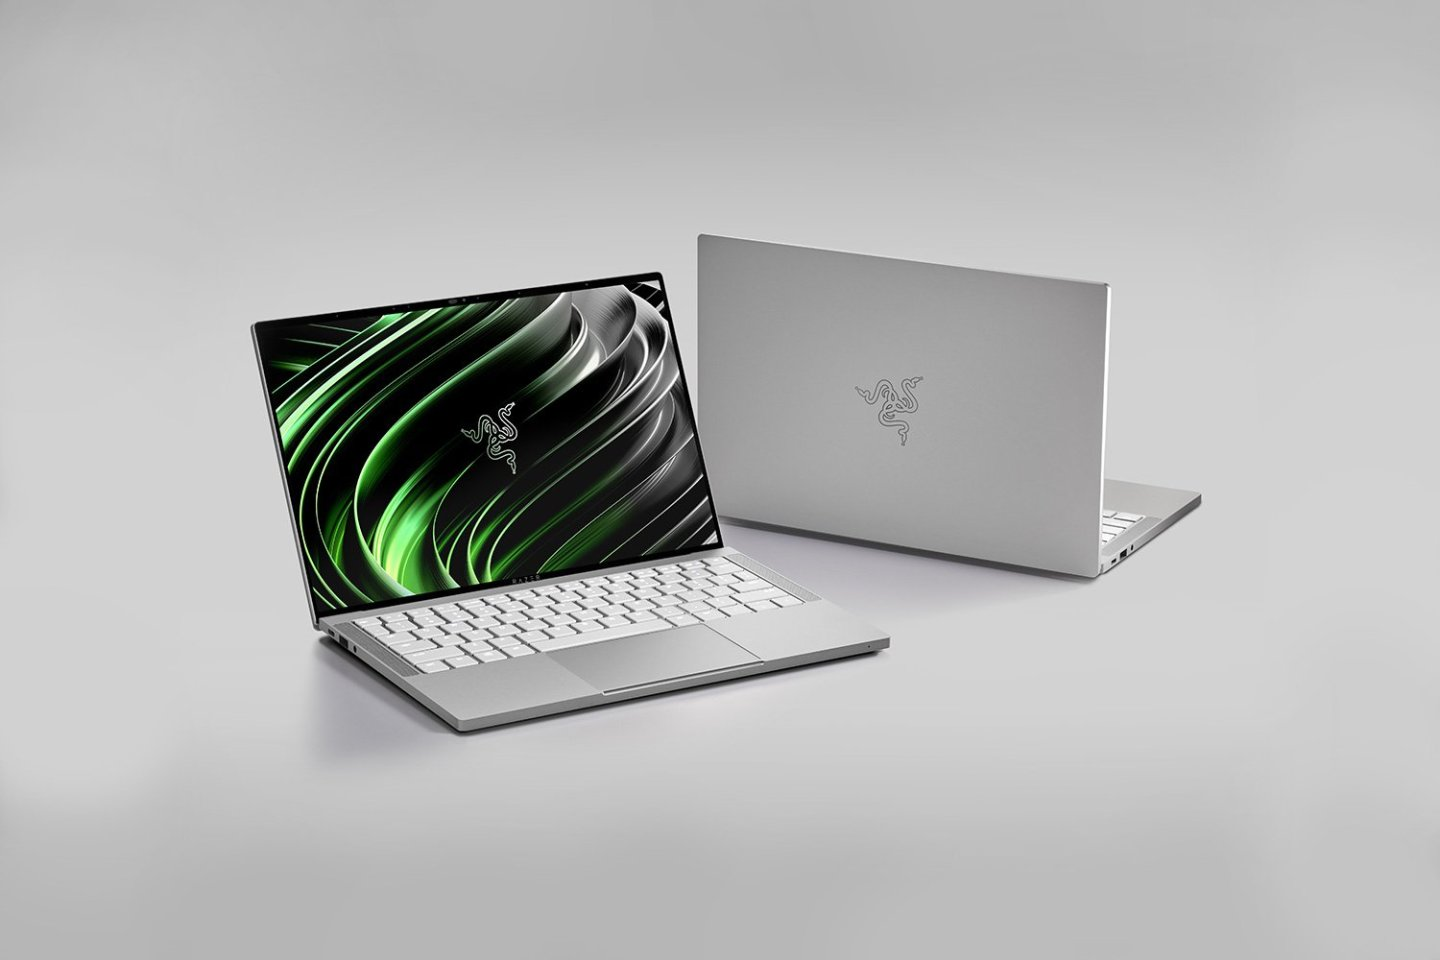 The Book 13 is reported to feature the world's thinnest 13.4-inch display bezels, comes with 11th Gen Intel Core processor options and Iris Xe graphics, and of course boasts an RGB-backlit keyboard